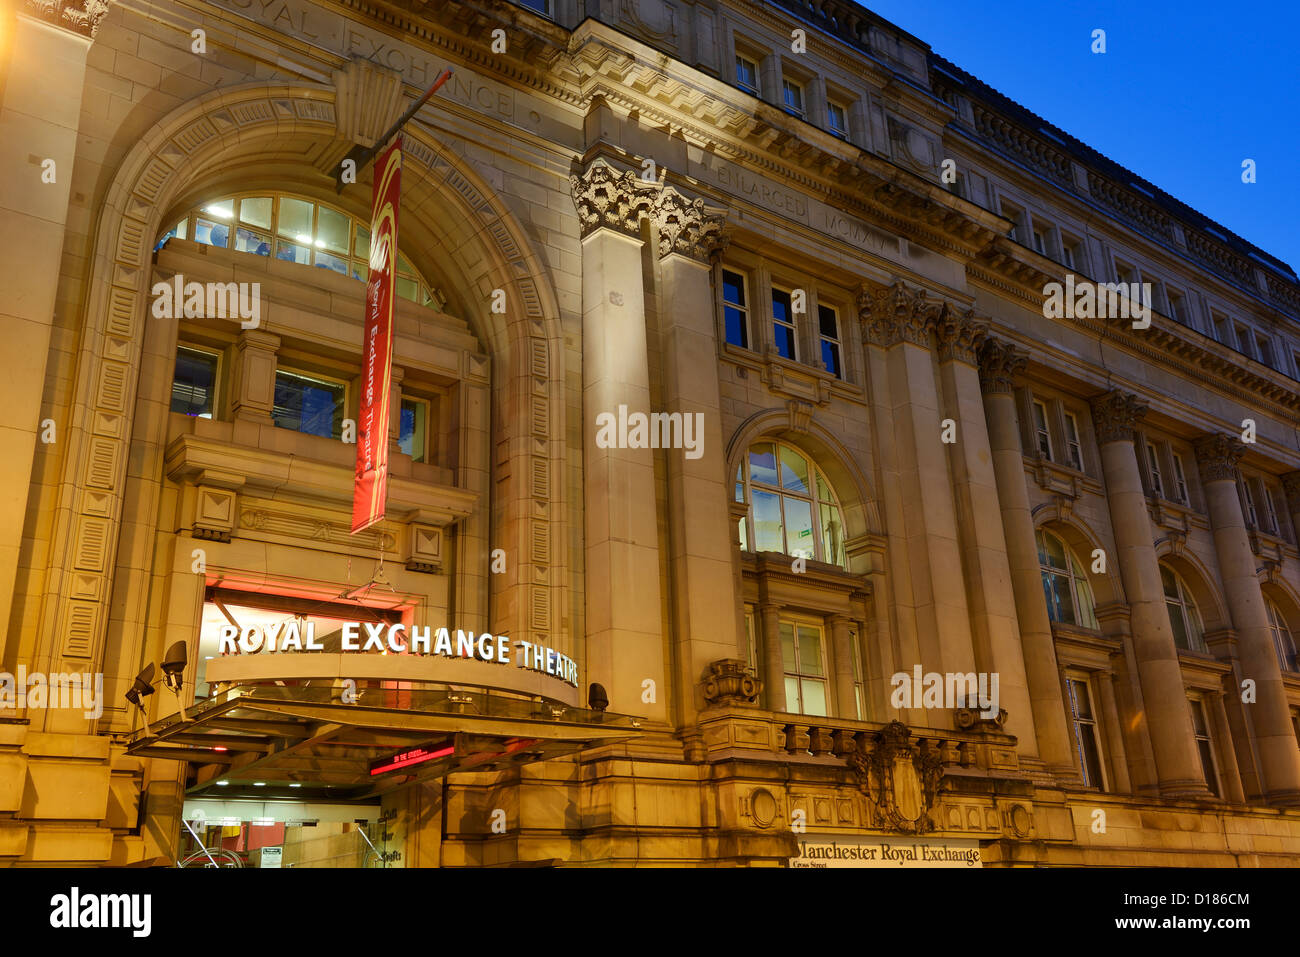 Manchester Royal Exchange Theatre entrance - Stock Image